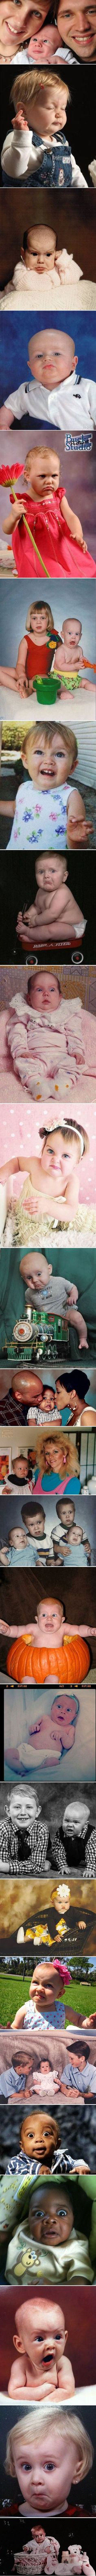 Funny kids and baby photographs taken at the perfectly wrong time.: